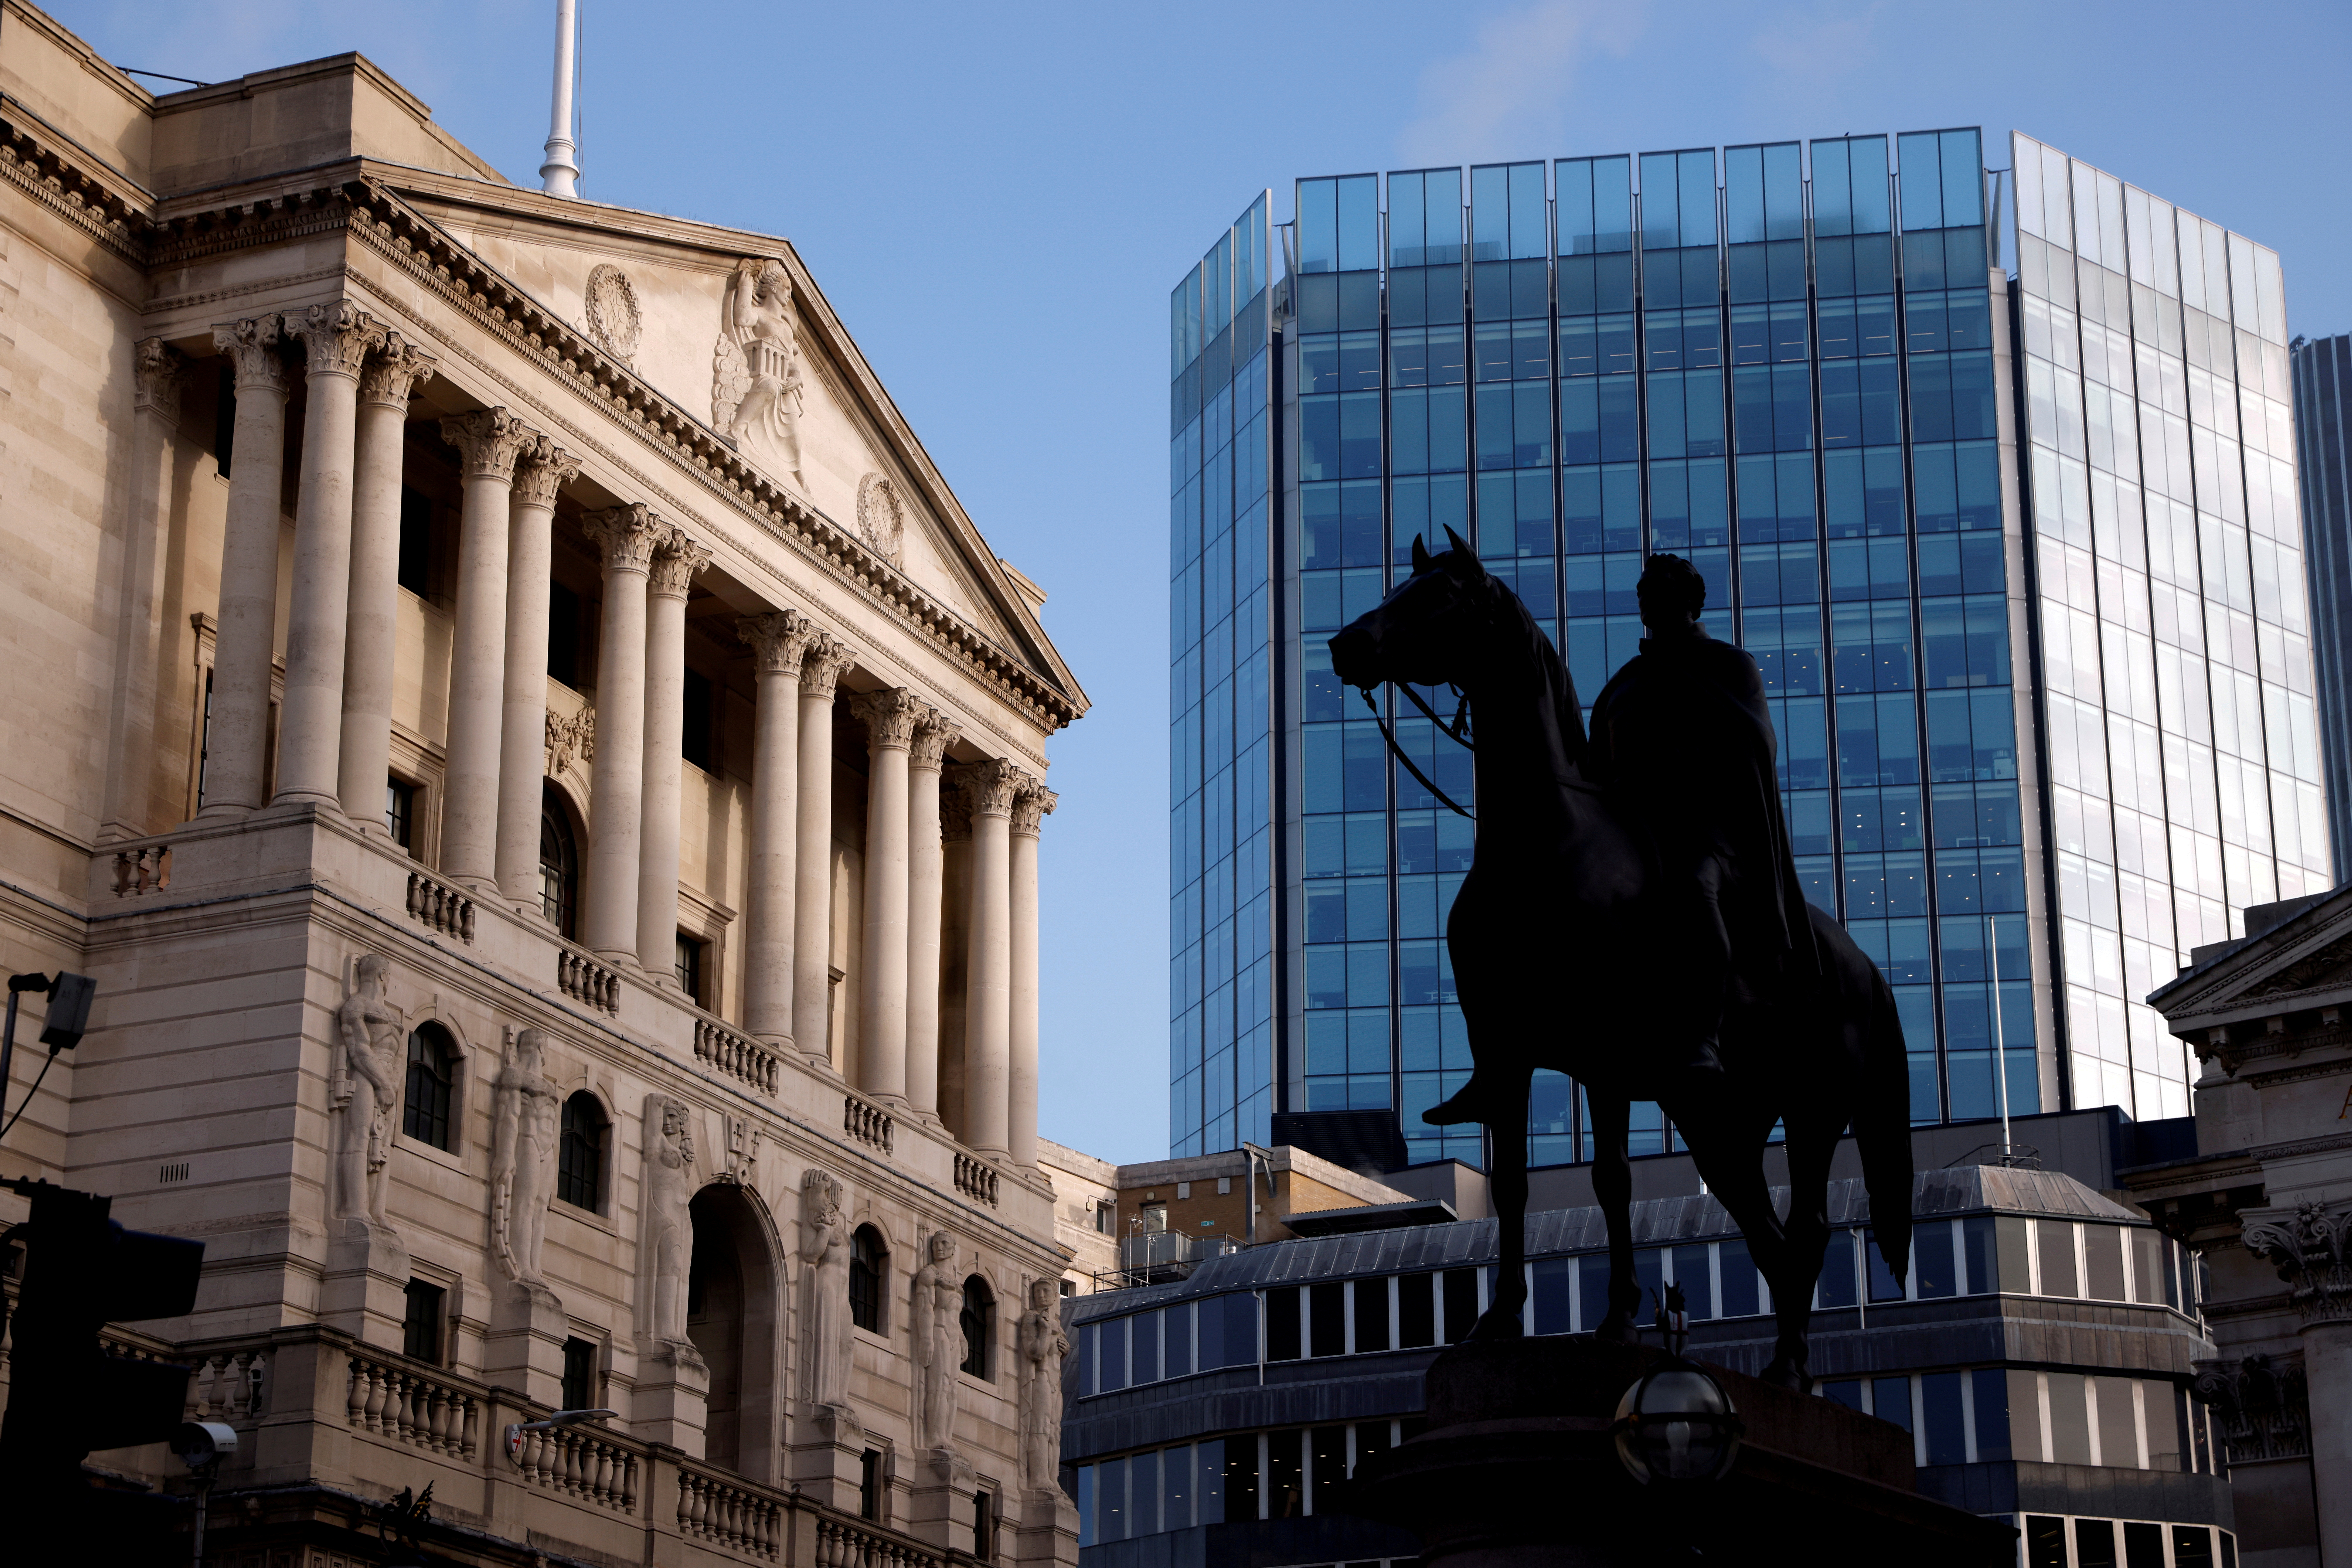 A general view shows The Bank of England in the City of London financial district in London, Britain, November 5, 2020. REUTERS/John Sibley//File Photo